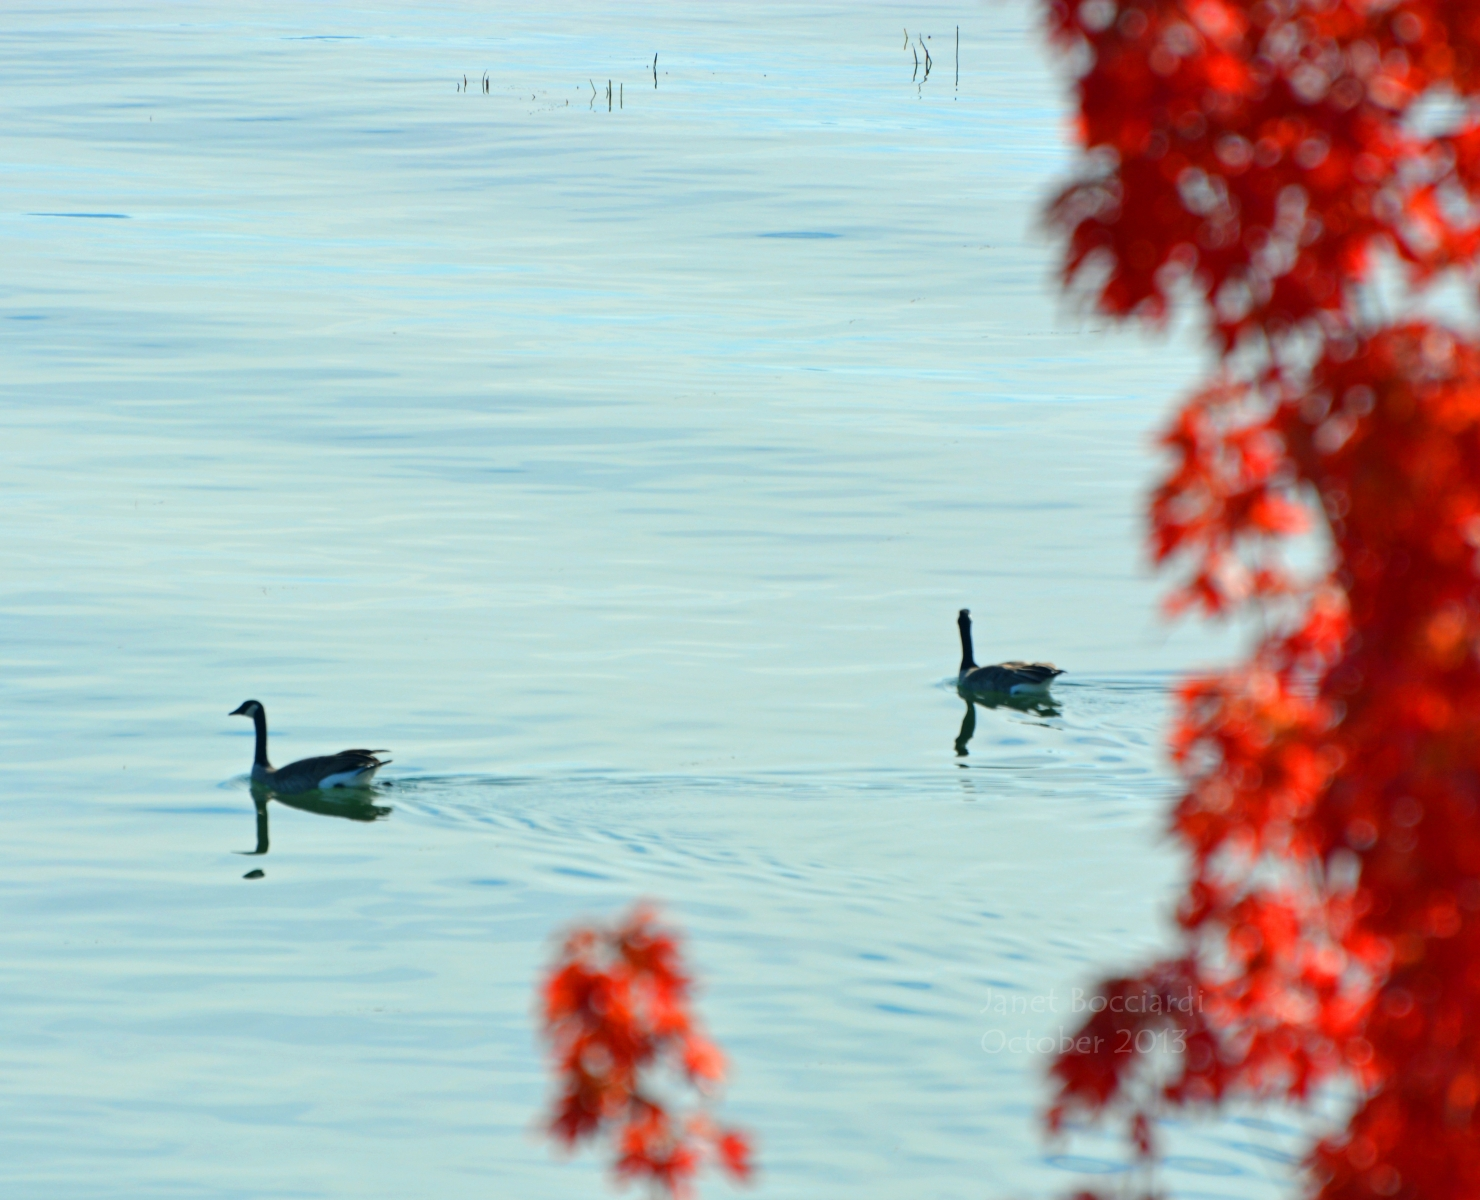 Geese on lake in Autumn.